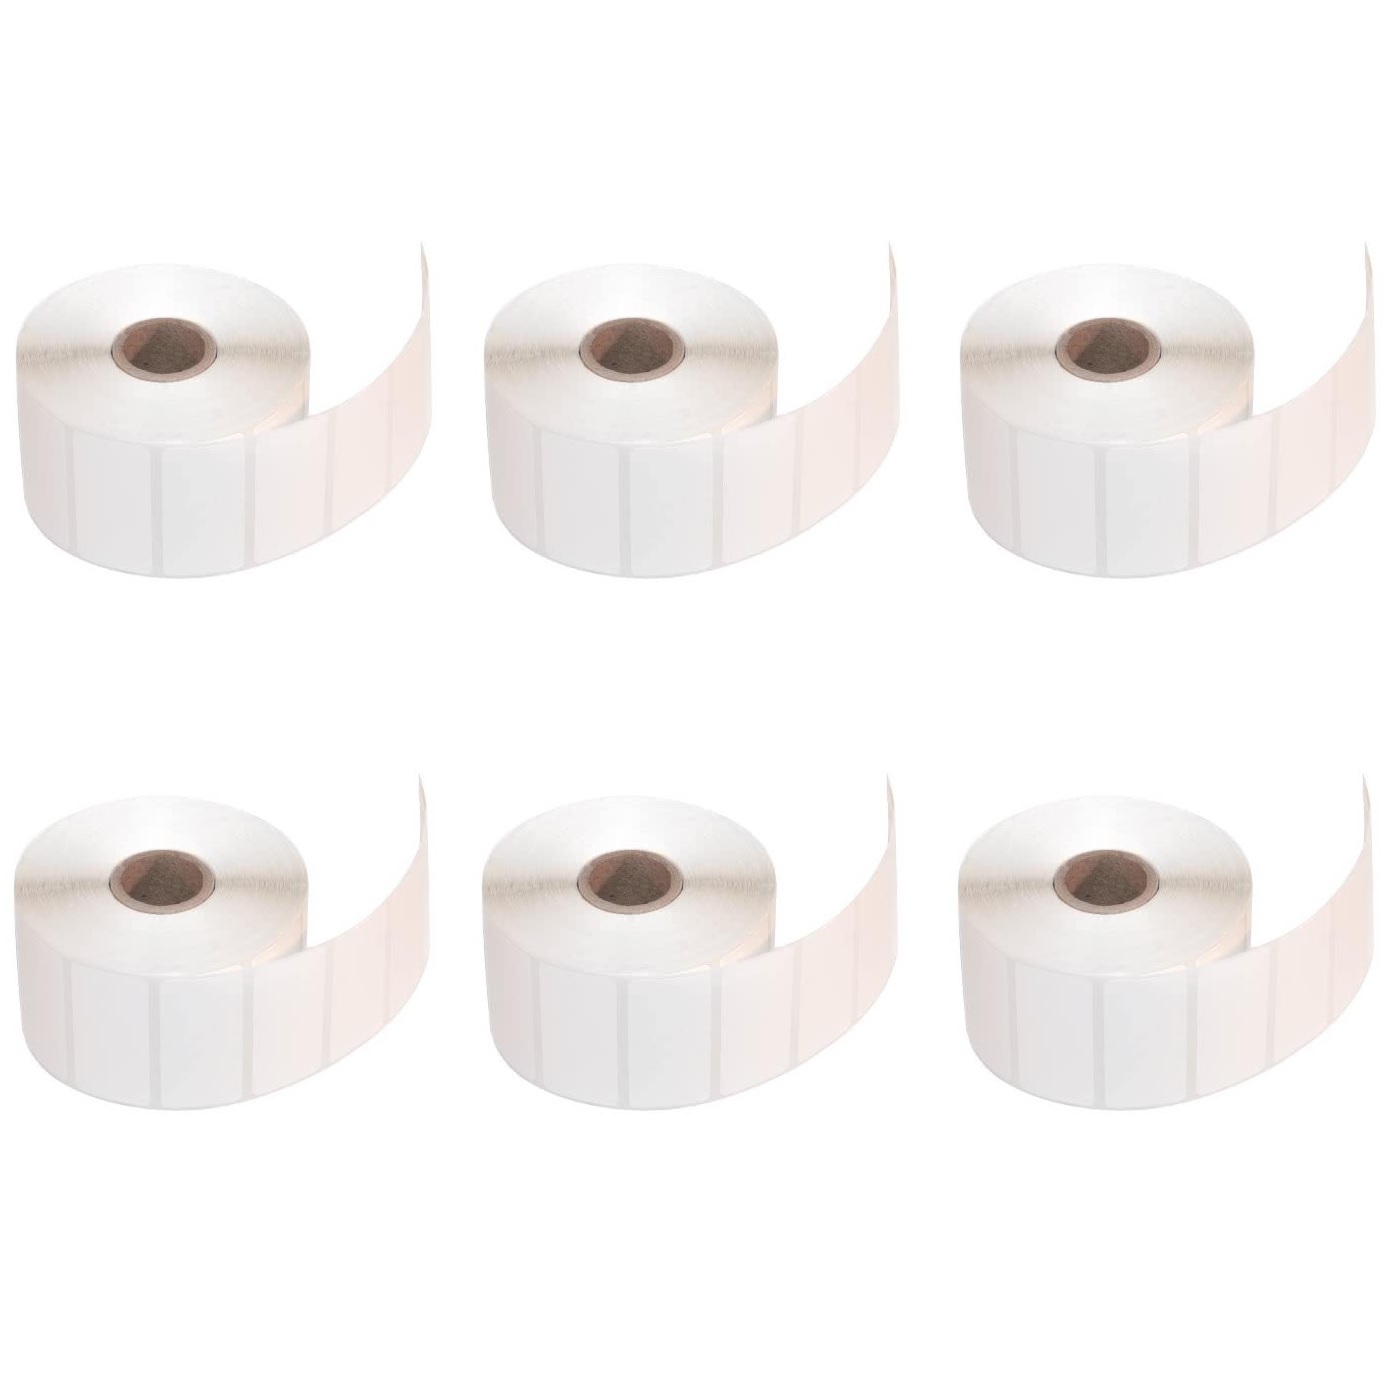 76x48 Direct Thermal Labels 1000/Roll - 6 Rolls